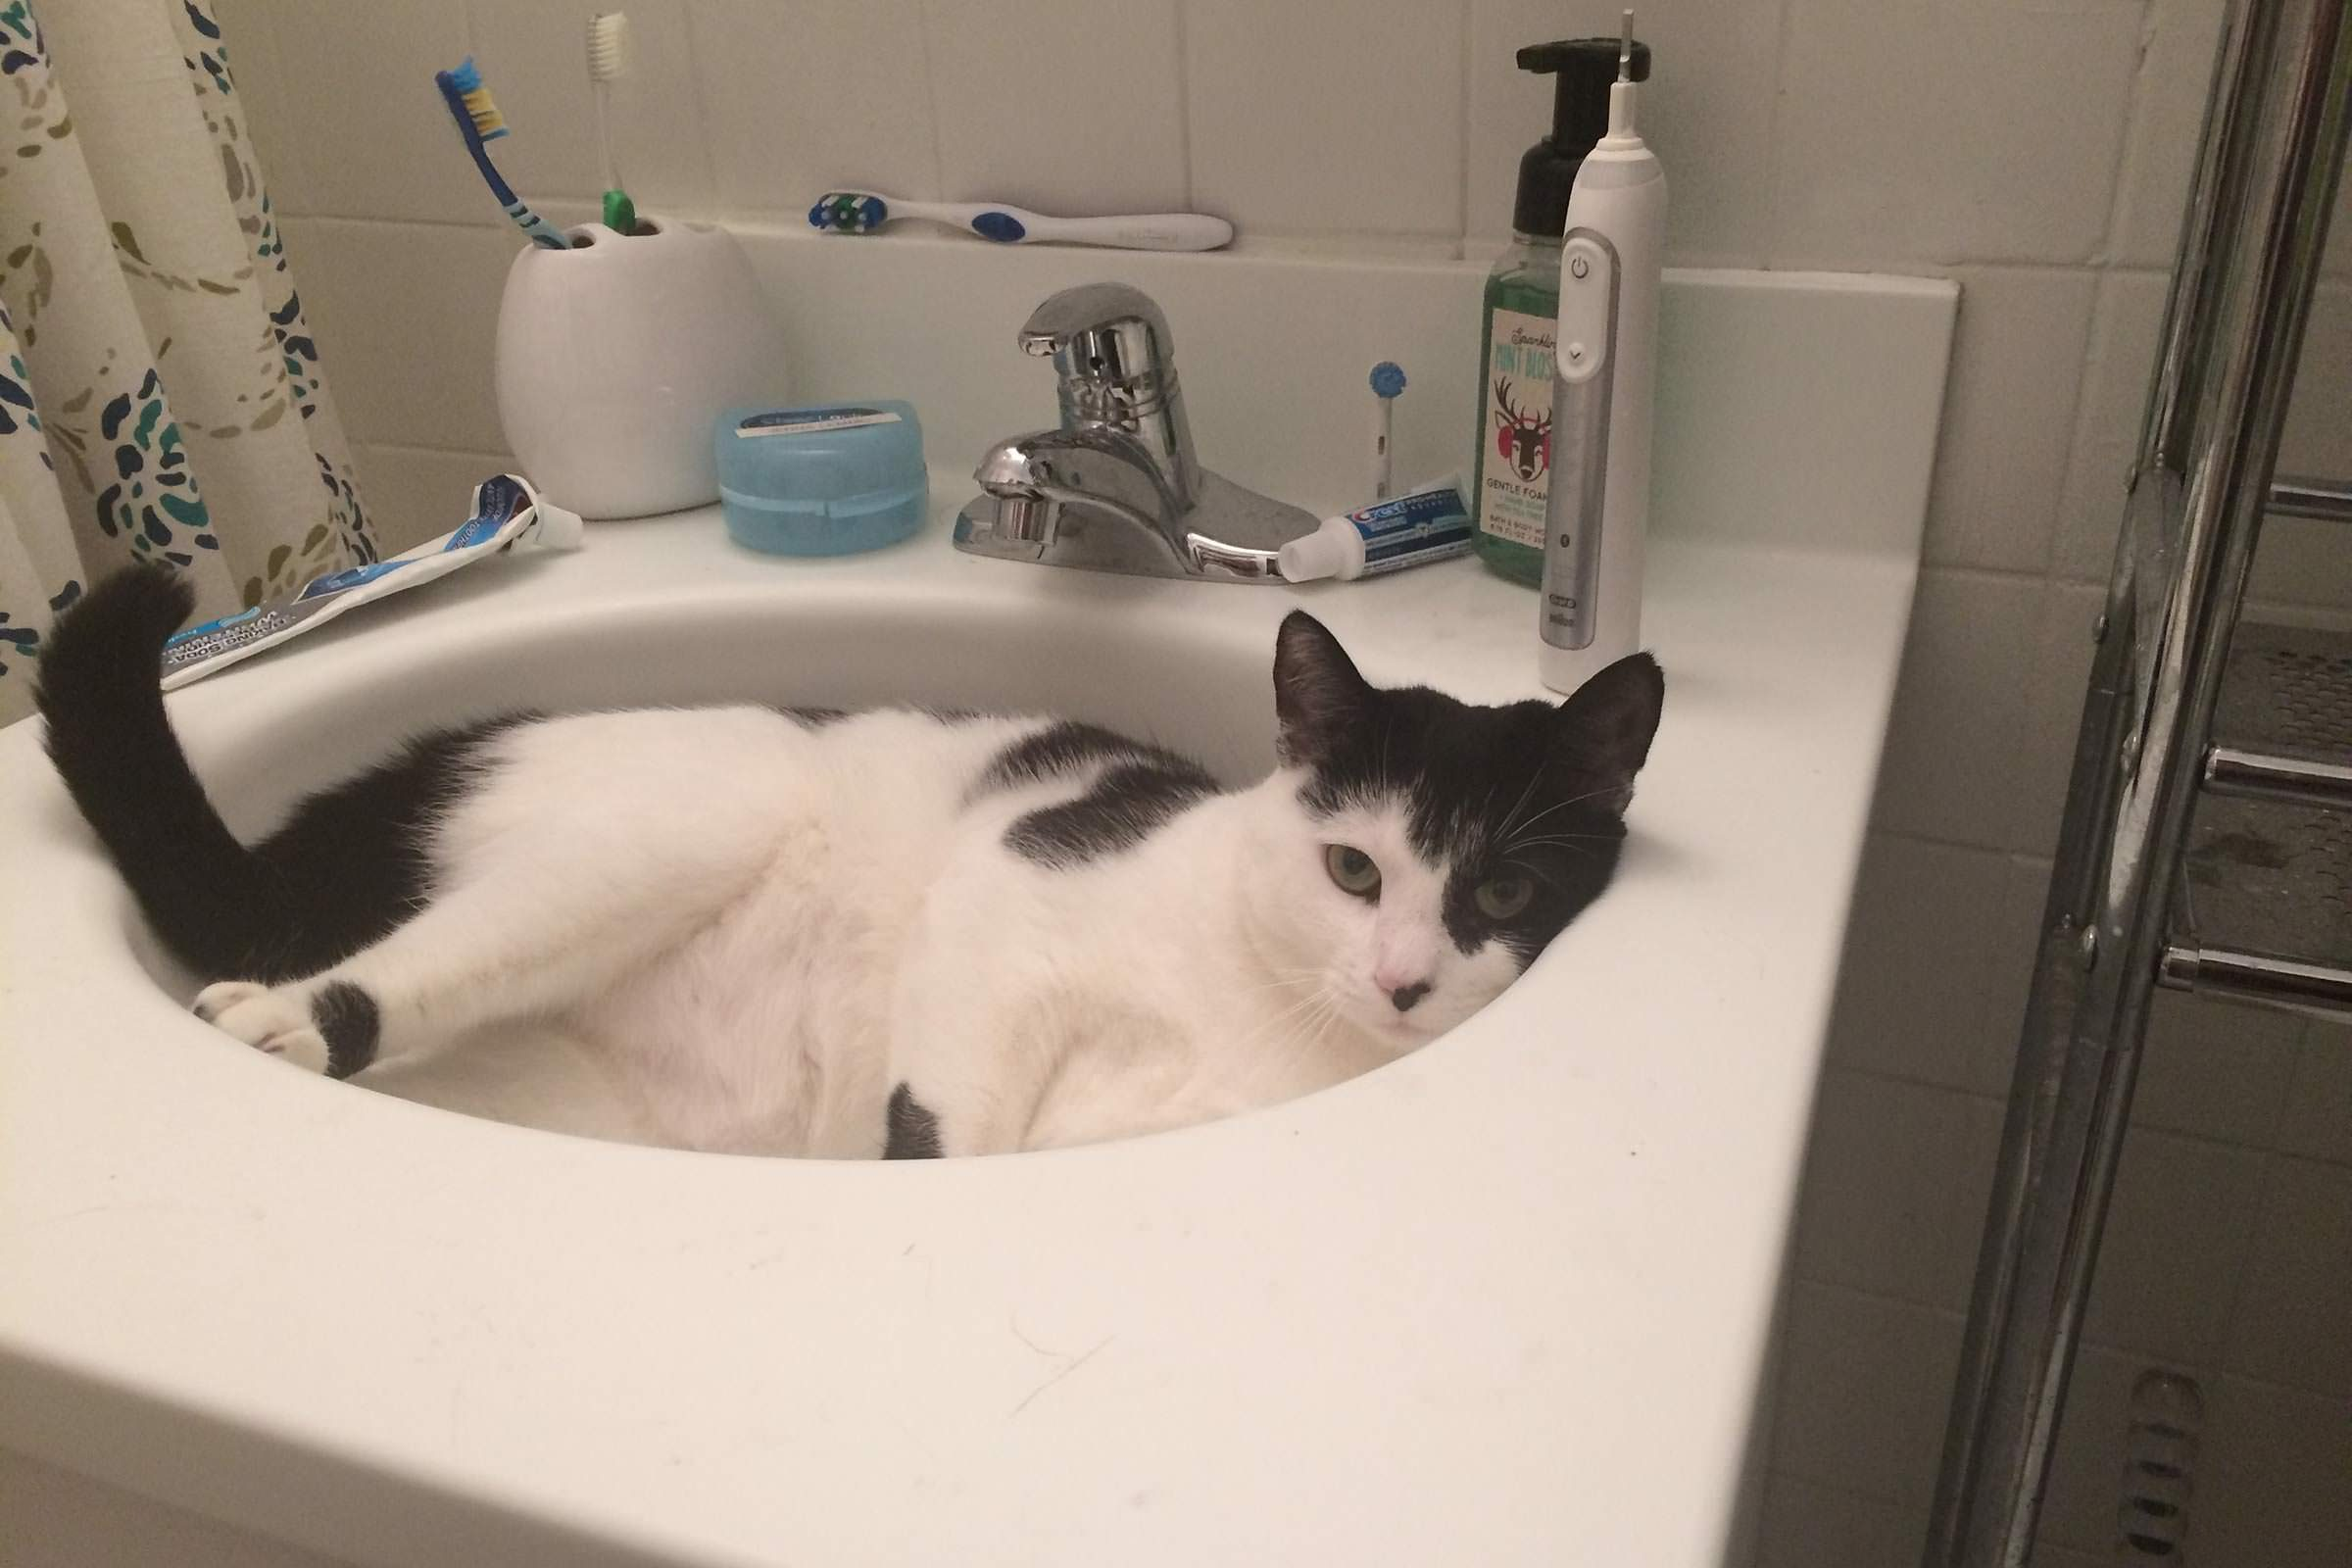 cat curled up in a bathroom sink